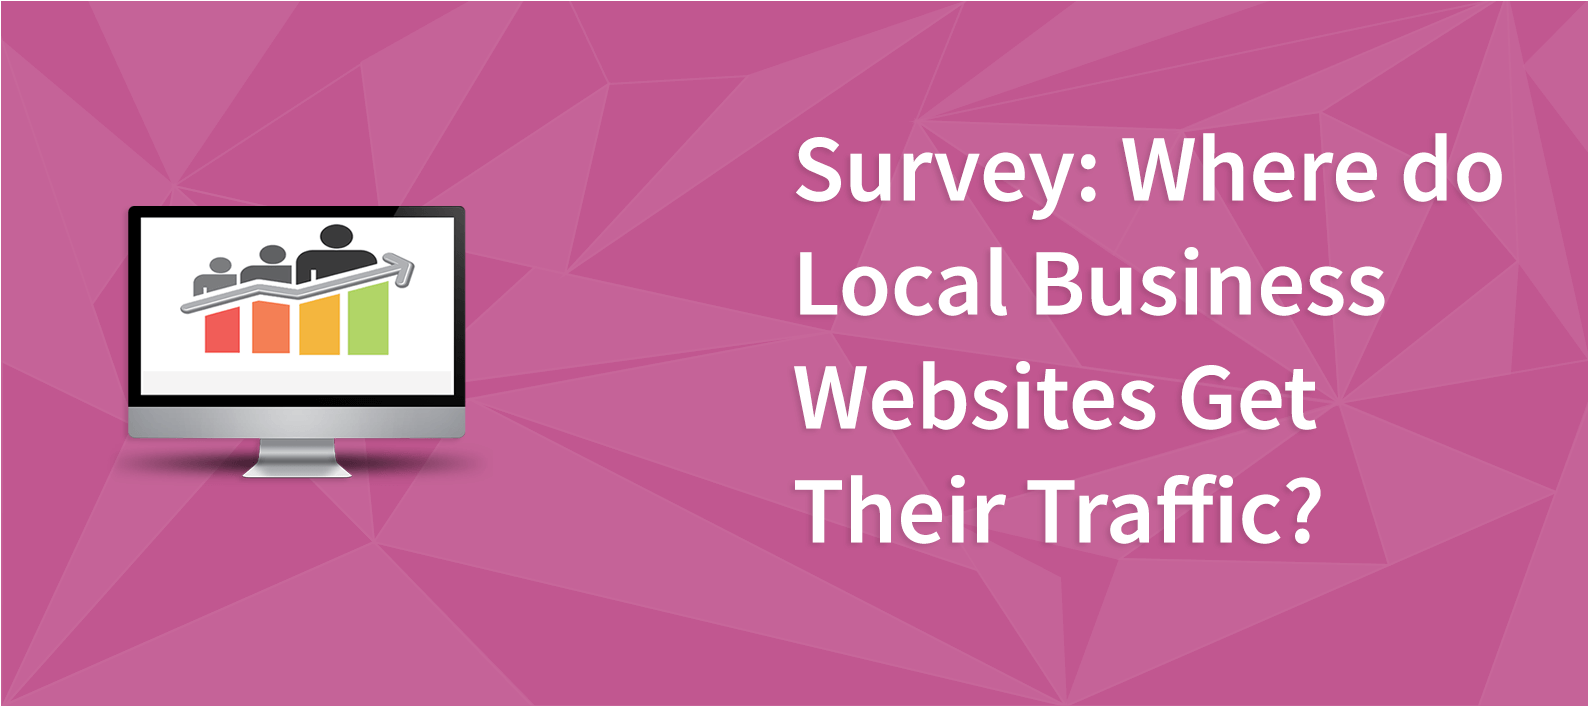 Survey: Where do Local Business Websites Get Their Traffic?